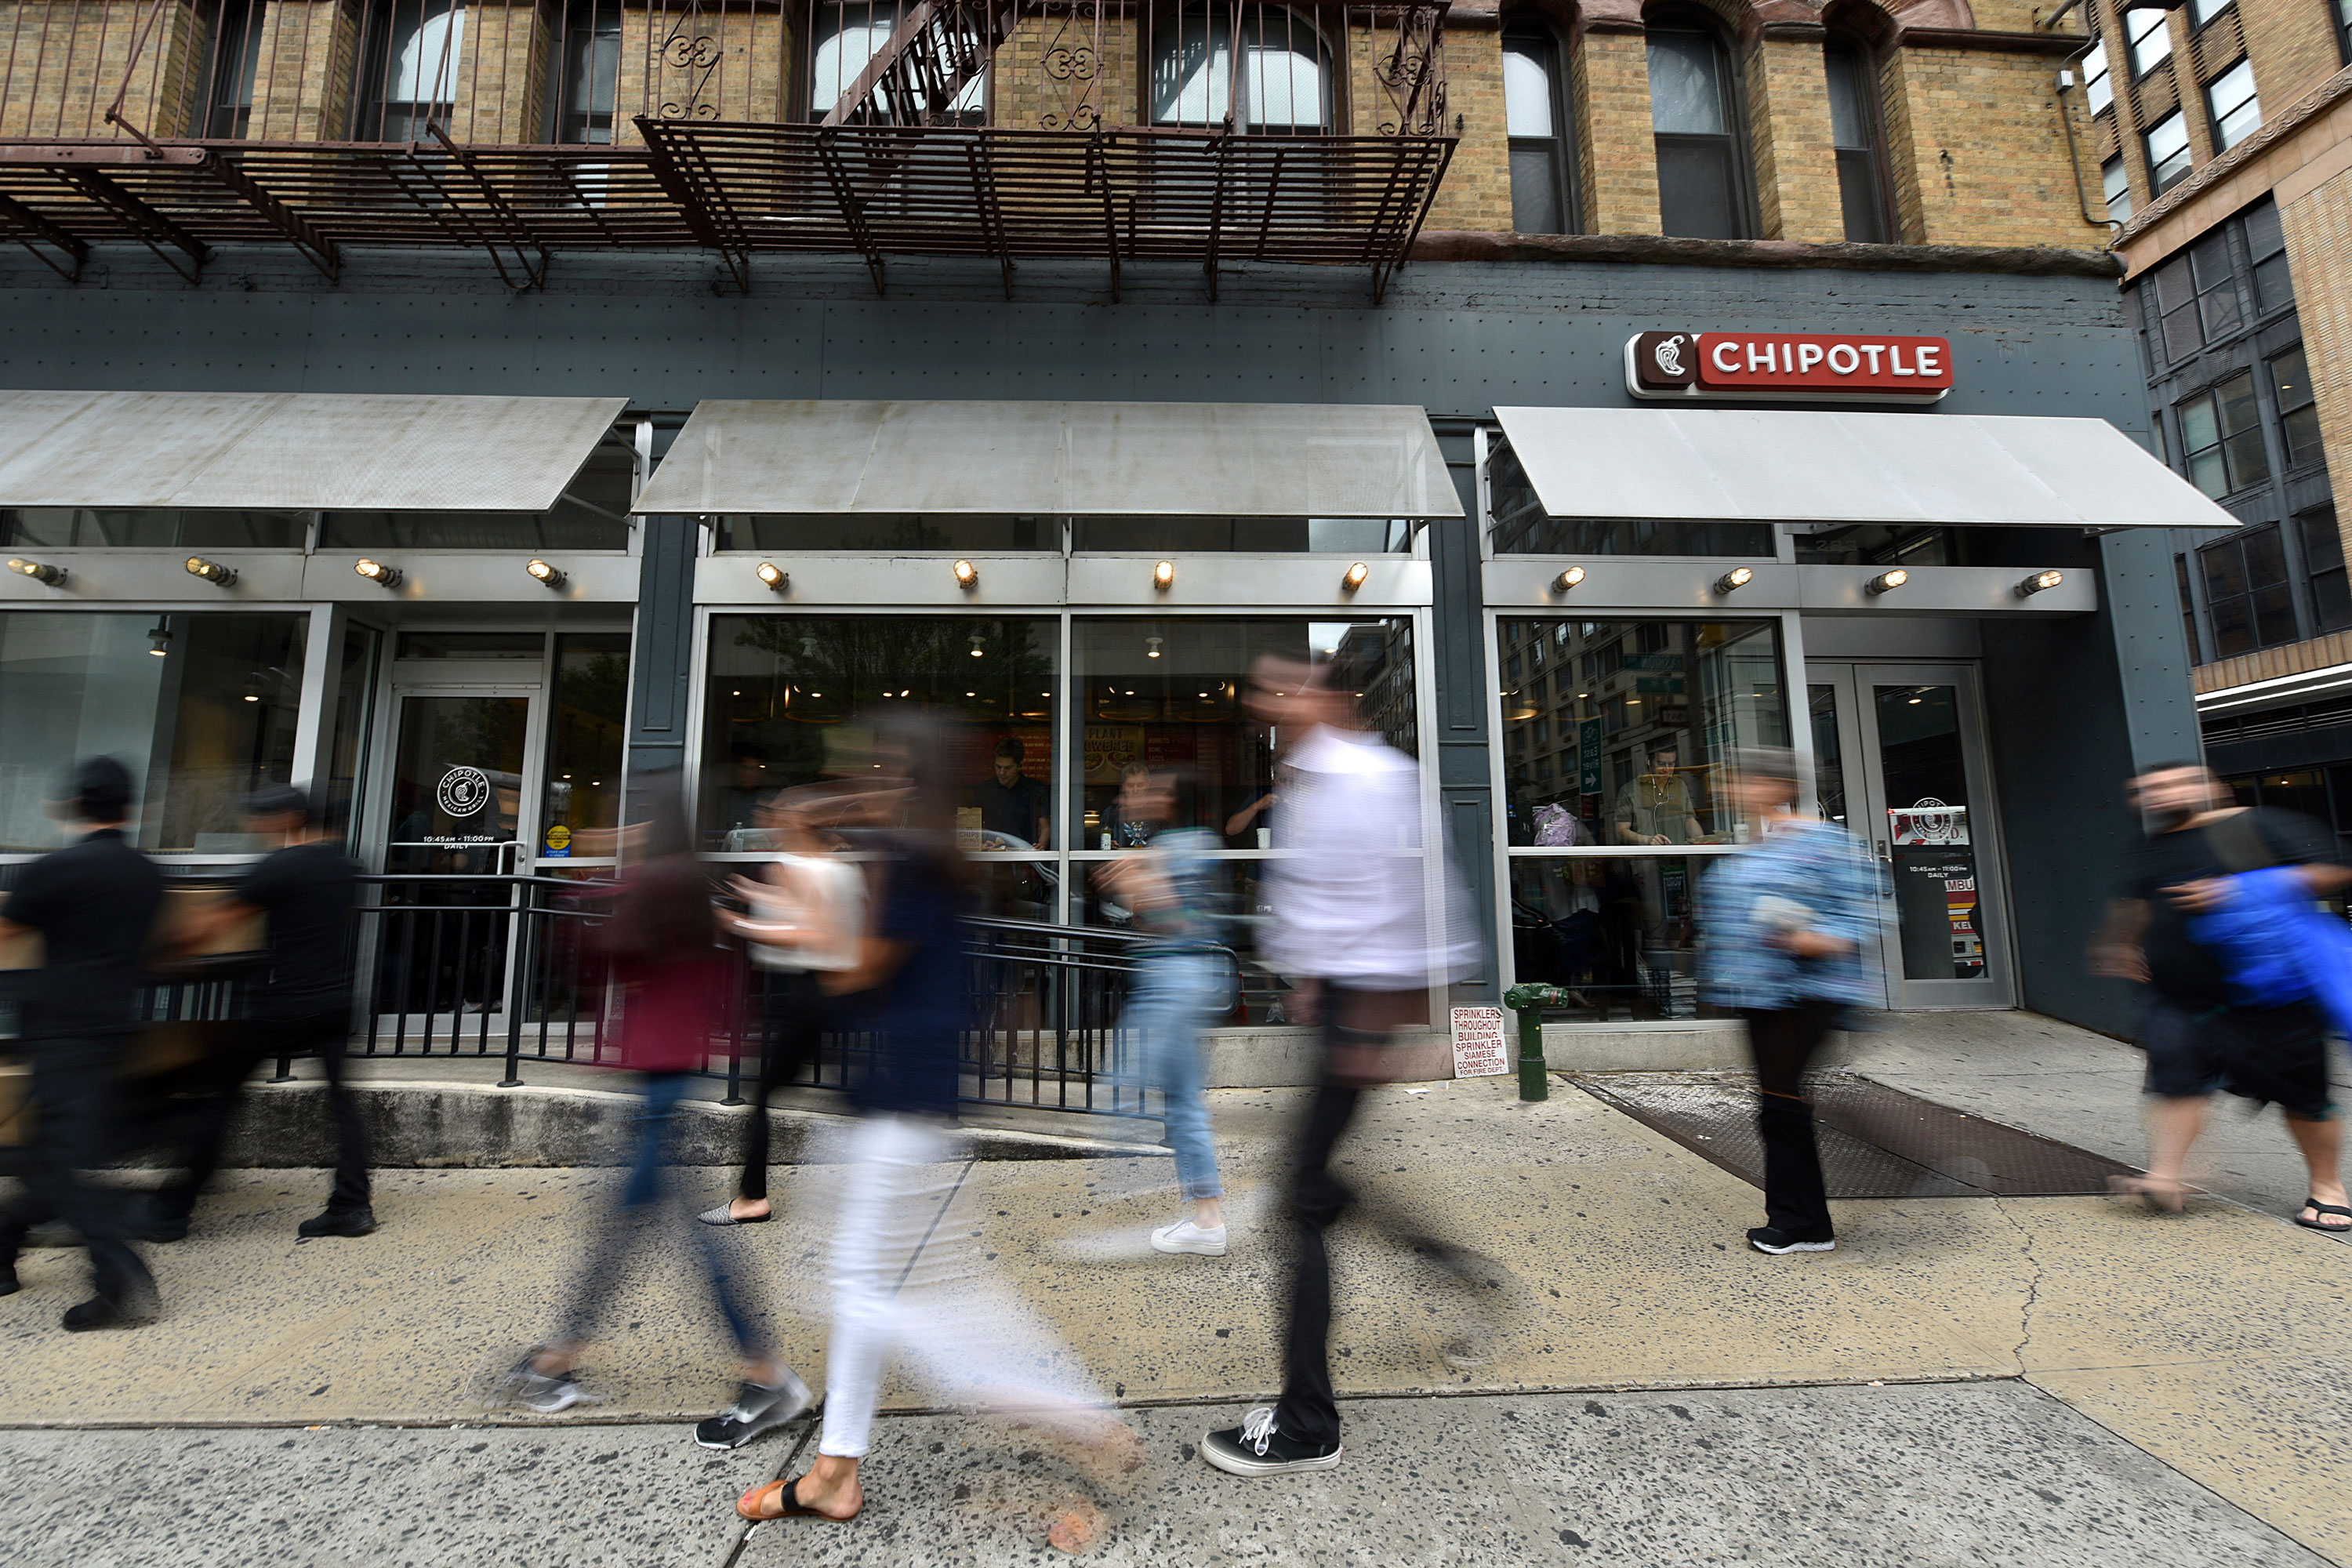 Chipotle cited with 13,253 child labor law violations in Massachusetts